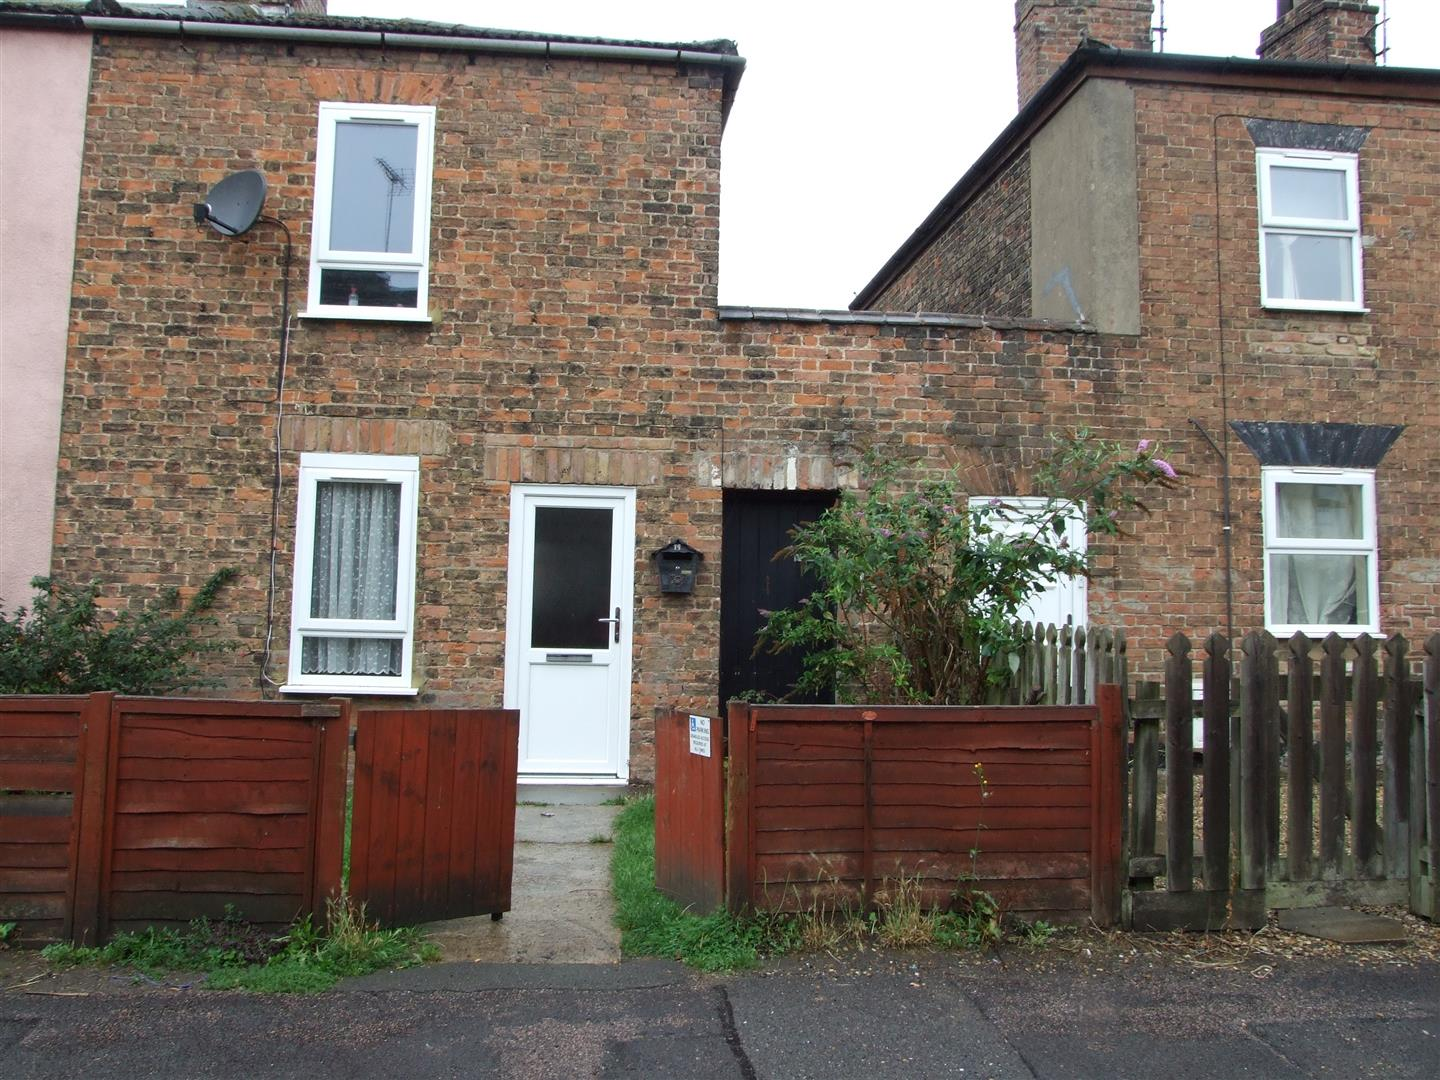 2 bed house to rent in Sutton Bridge Spalding, PE12 9UJ, PE12